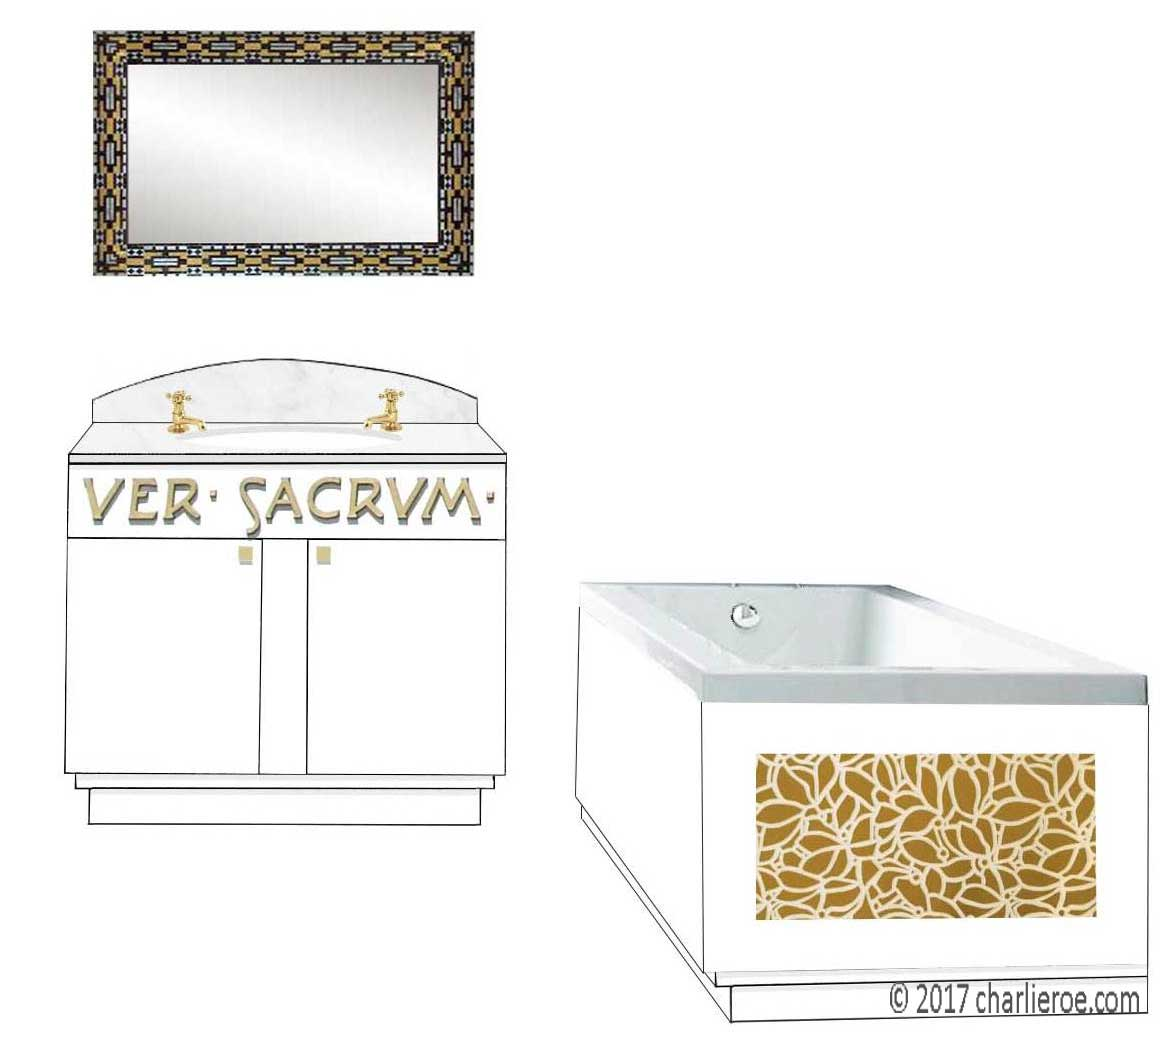 new Vienna Secession Art Nouveau Jugendstil painted bathroom vanity, bath panels & wall mirror